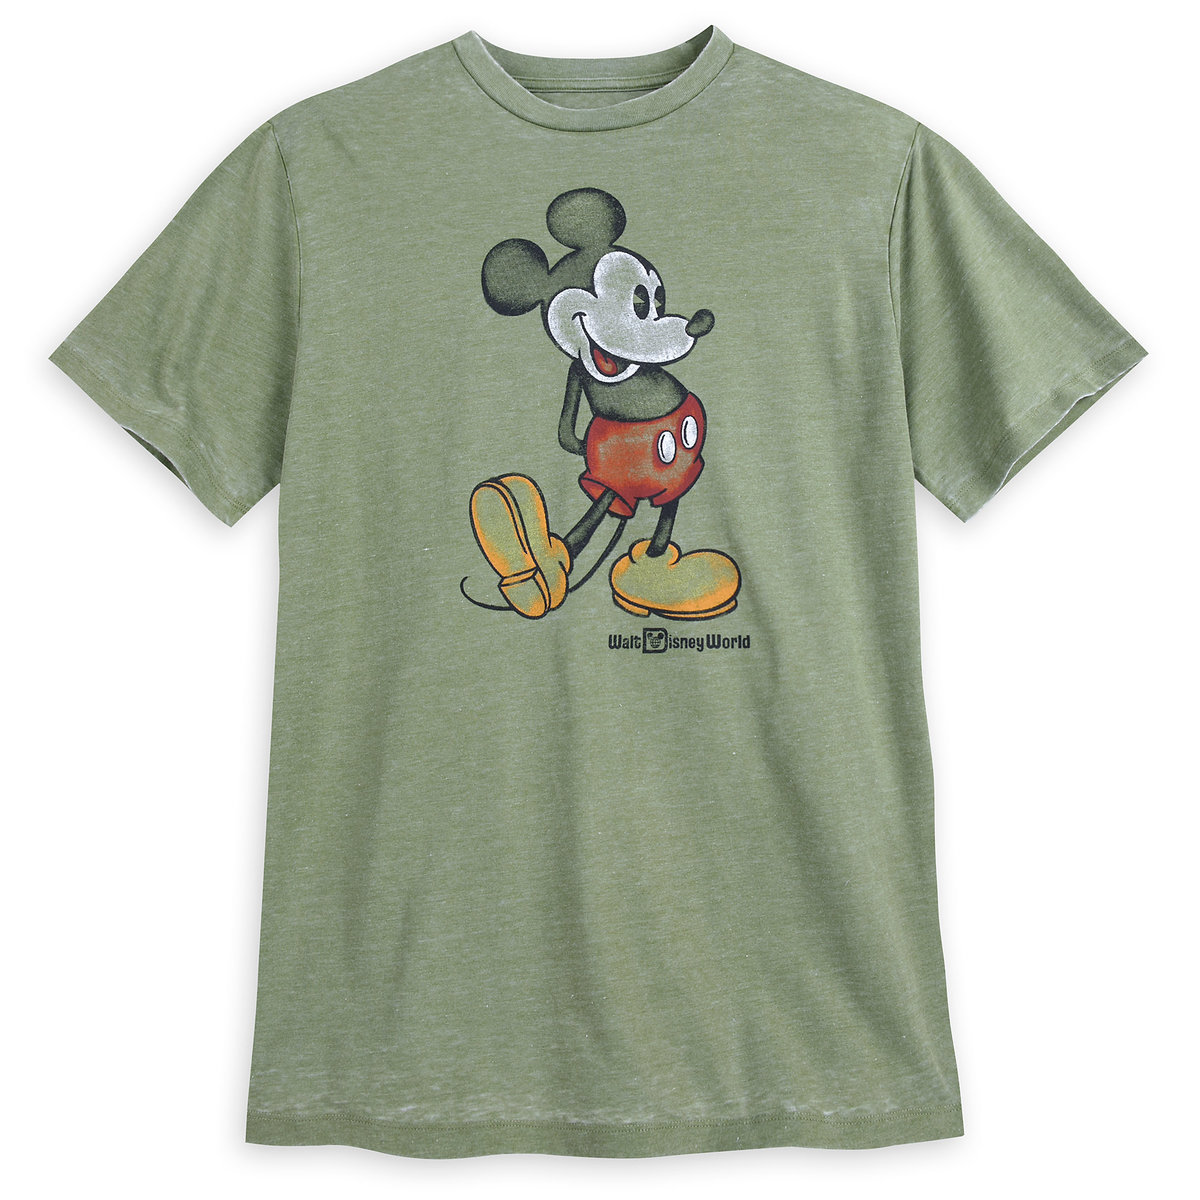 f28375c7b27e0a Product Image of Mickey Mouse Classic T-Shirt for Men - Walt Disney World -